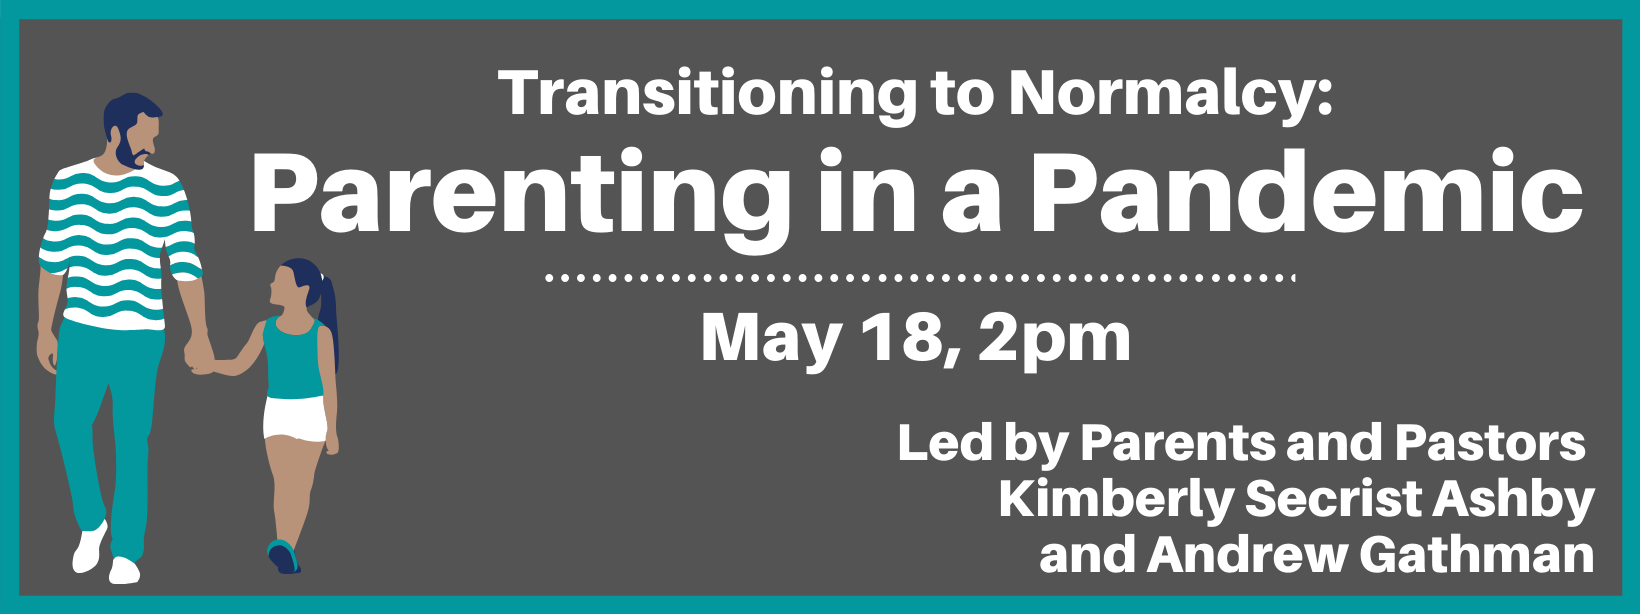 Transitioning to Normalcy: Parenting in a Pandemic